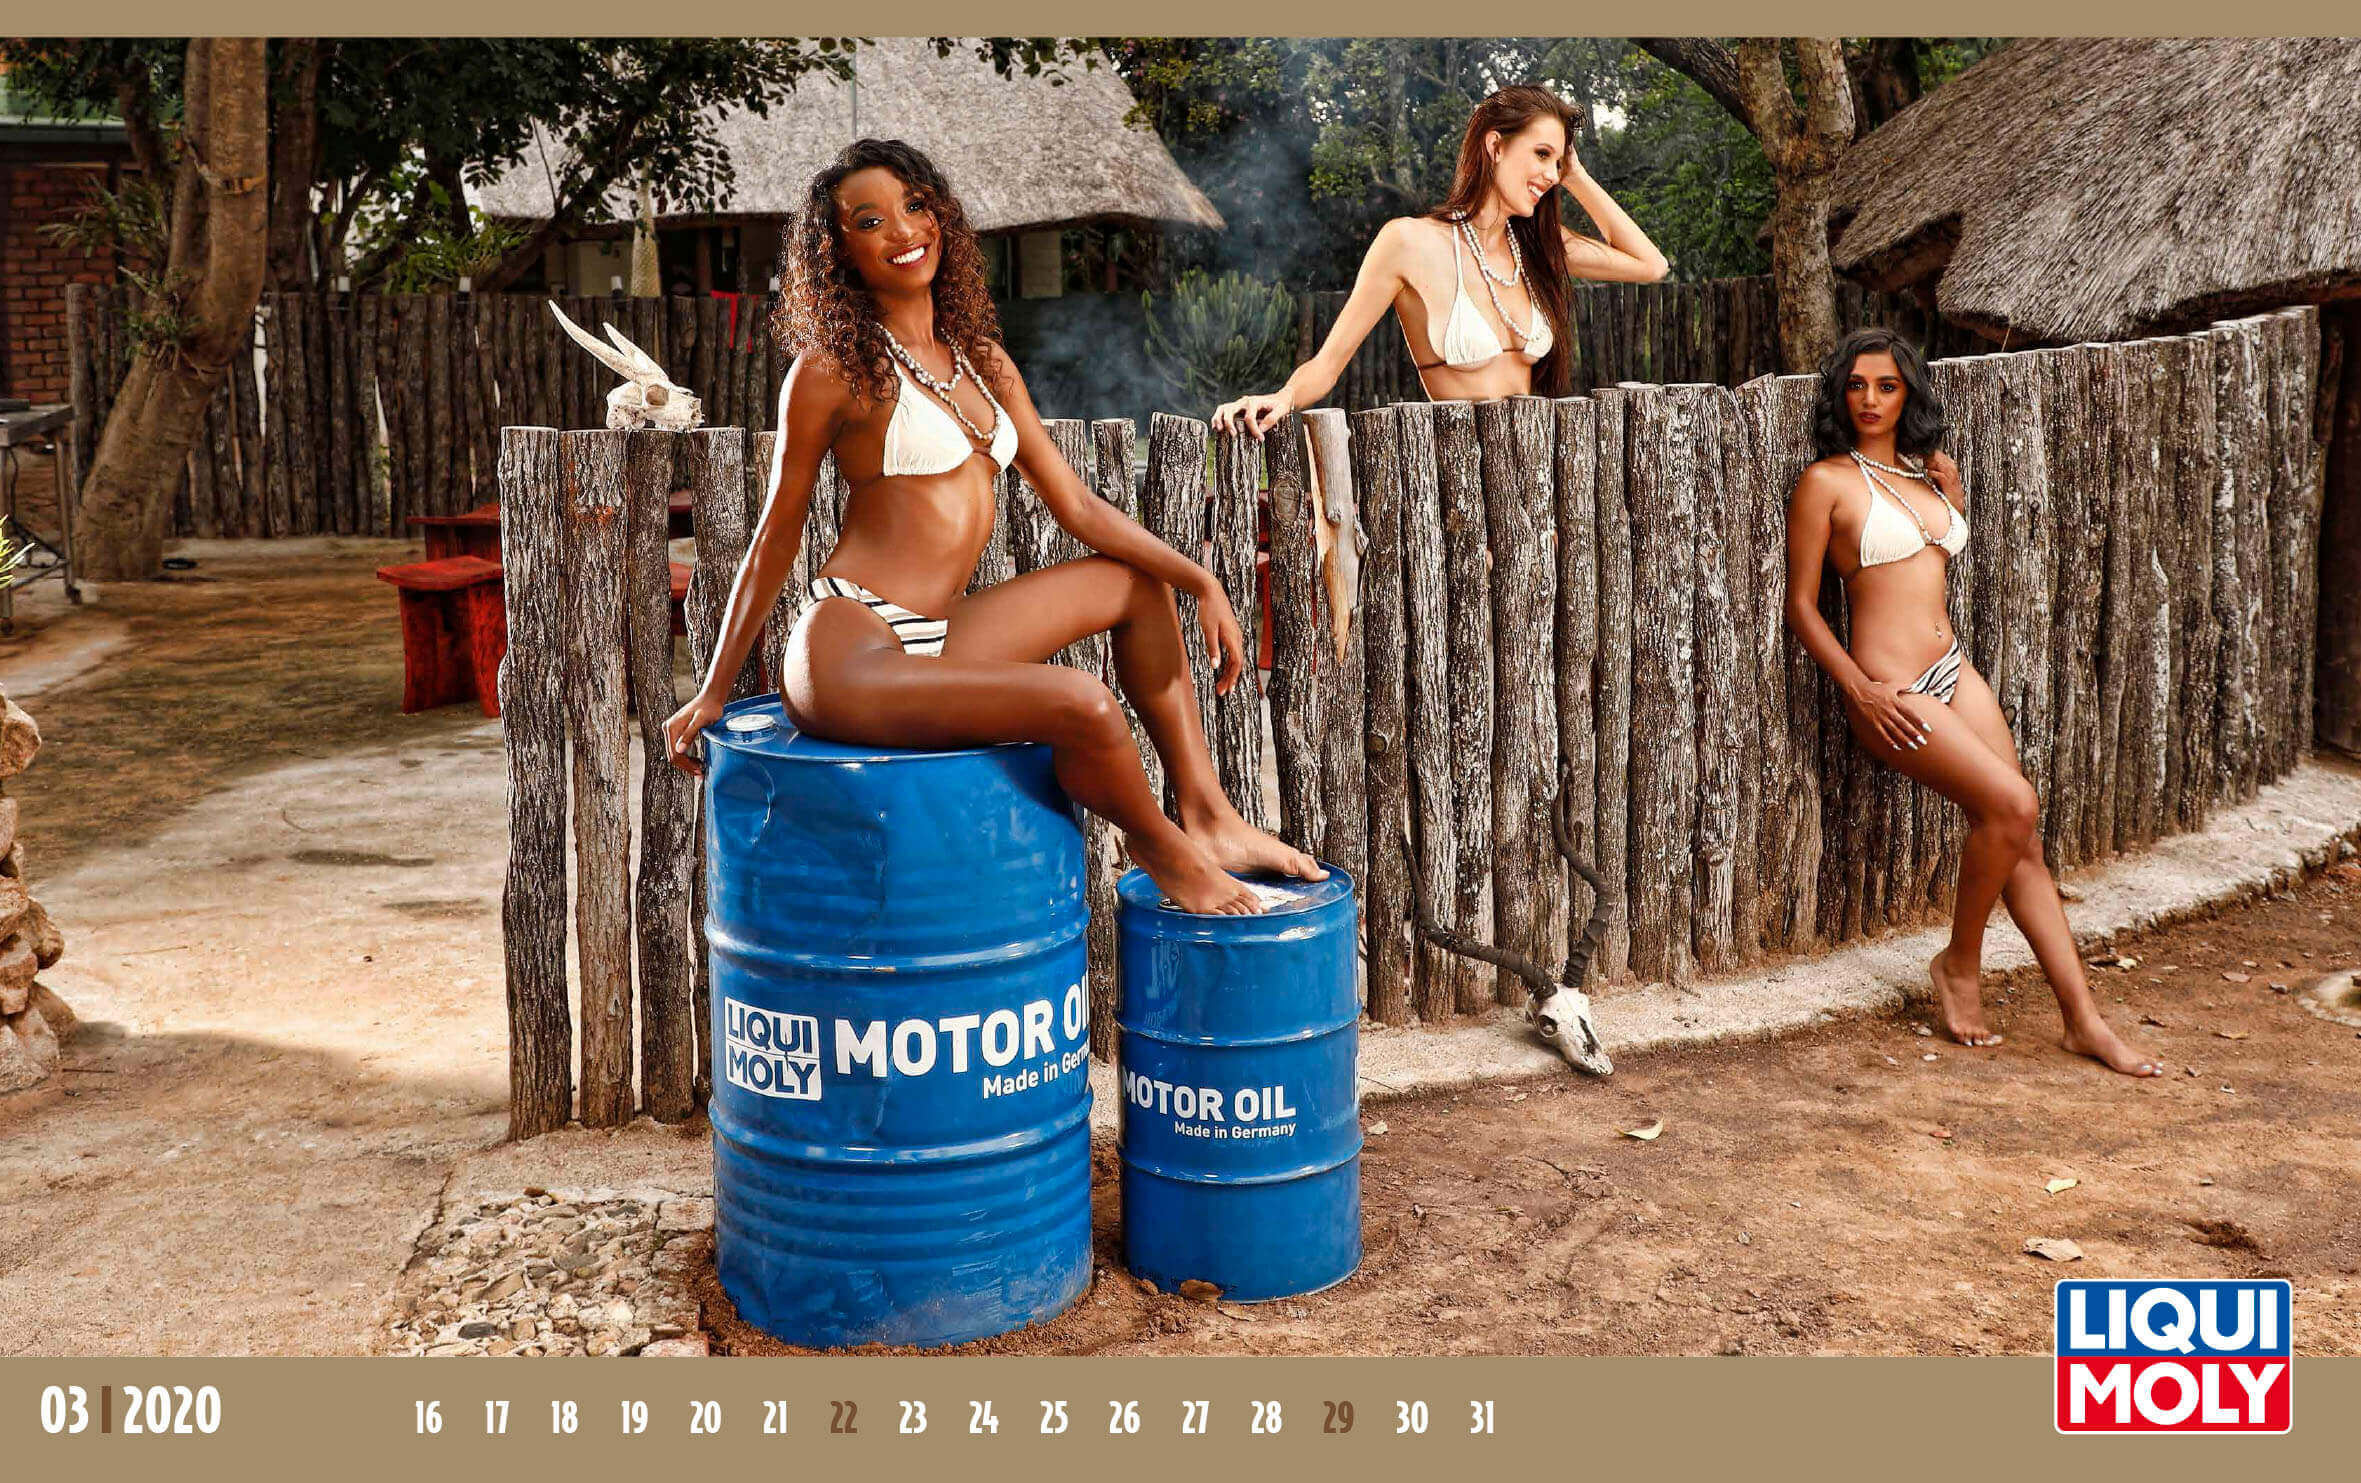 CALENDARIO LIQUI MOLY 2020 CHICAS